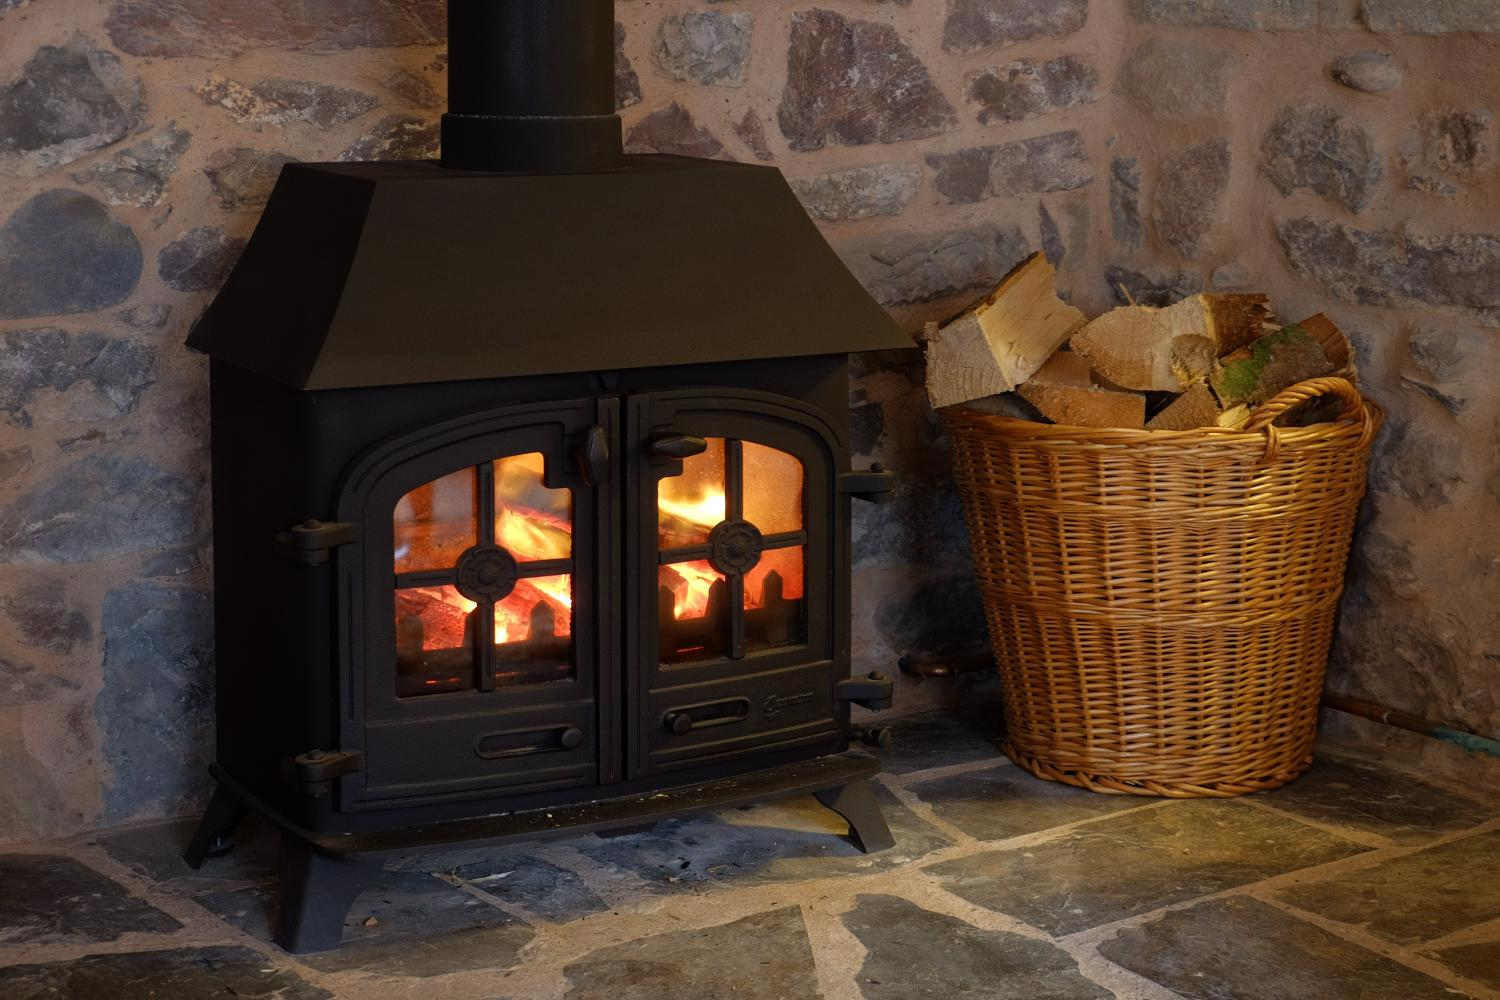 Enjoy the wood burning stove, we provide a basket of logs